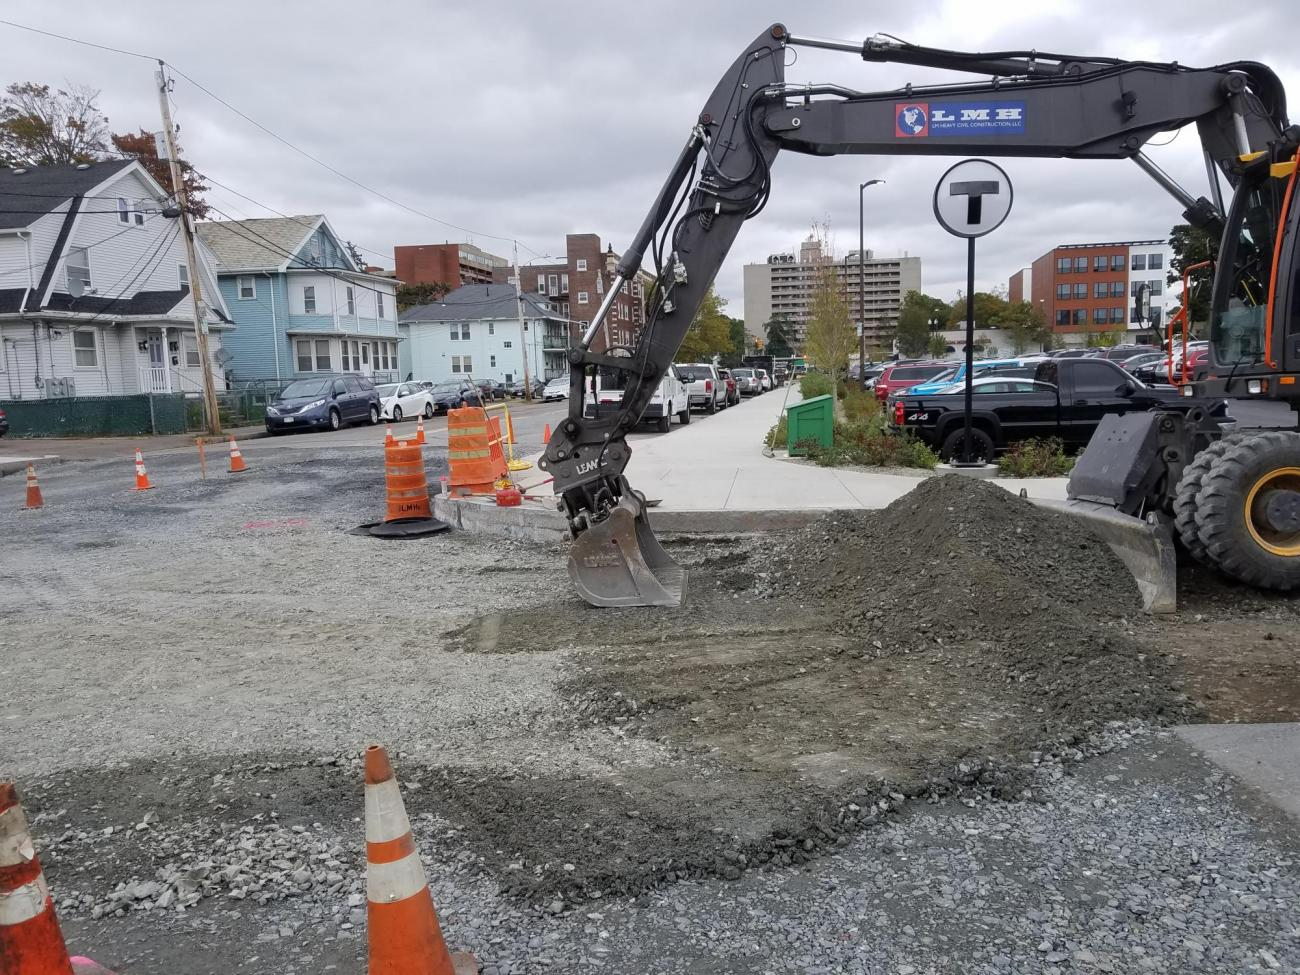 Road work at the corner of Greenwood Ave and Woodbine Street (October 2019)